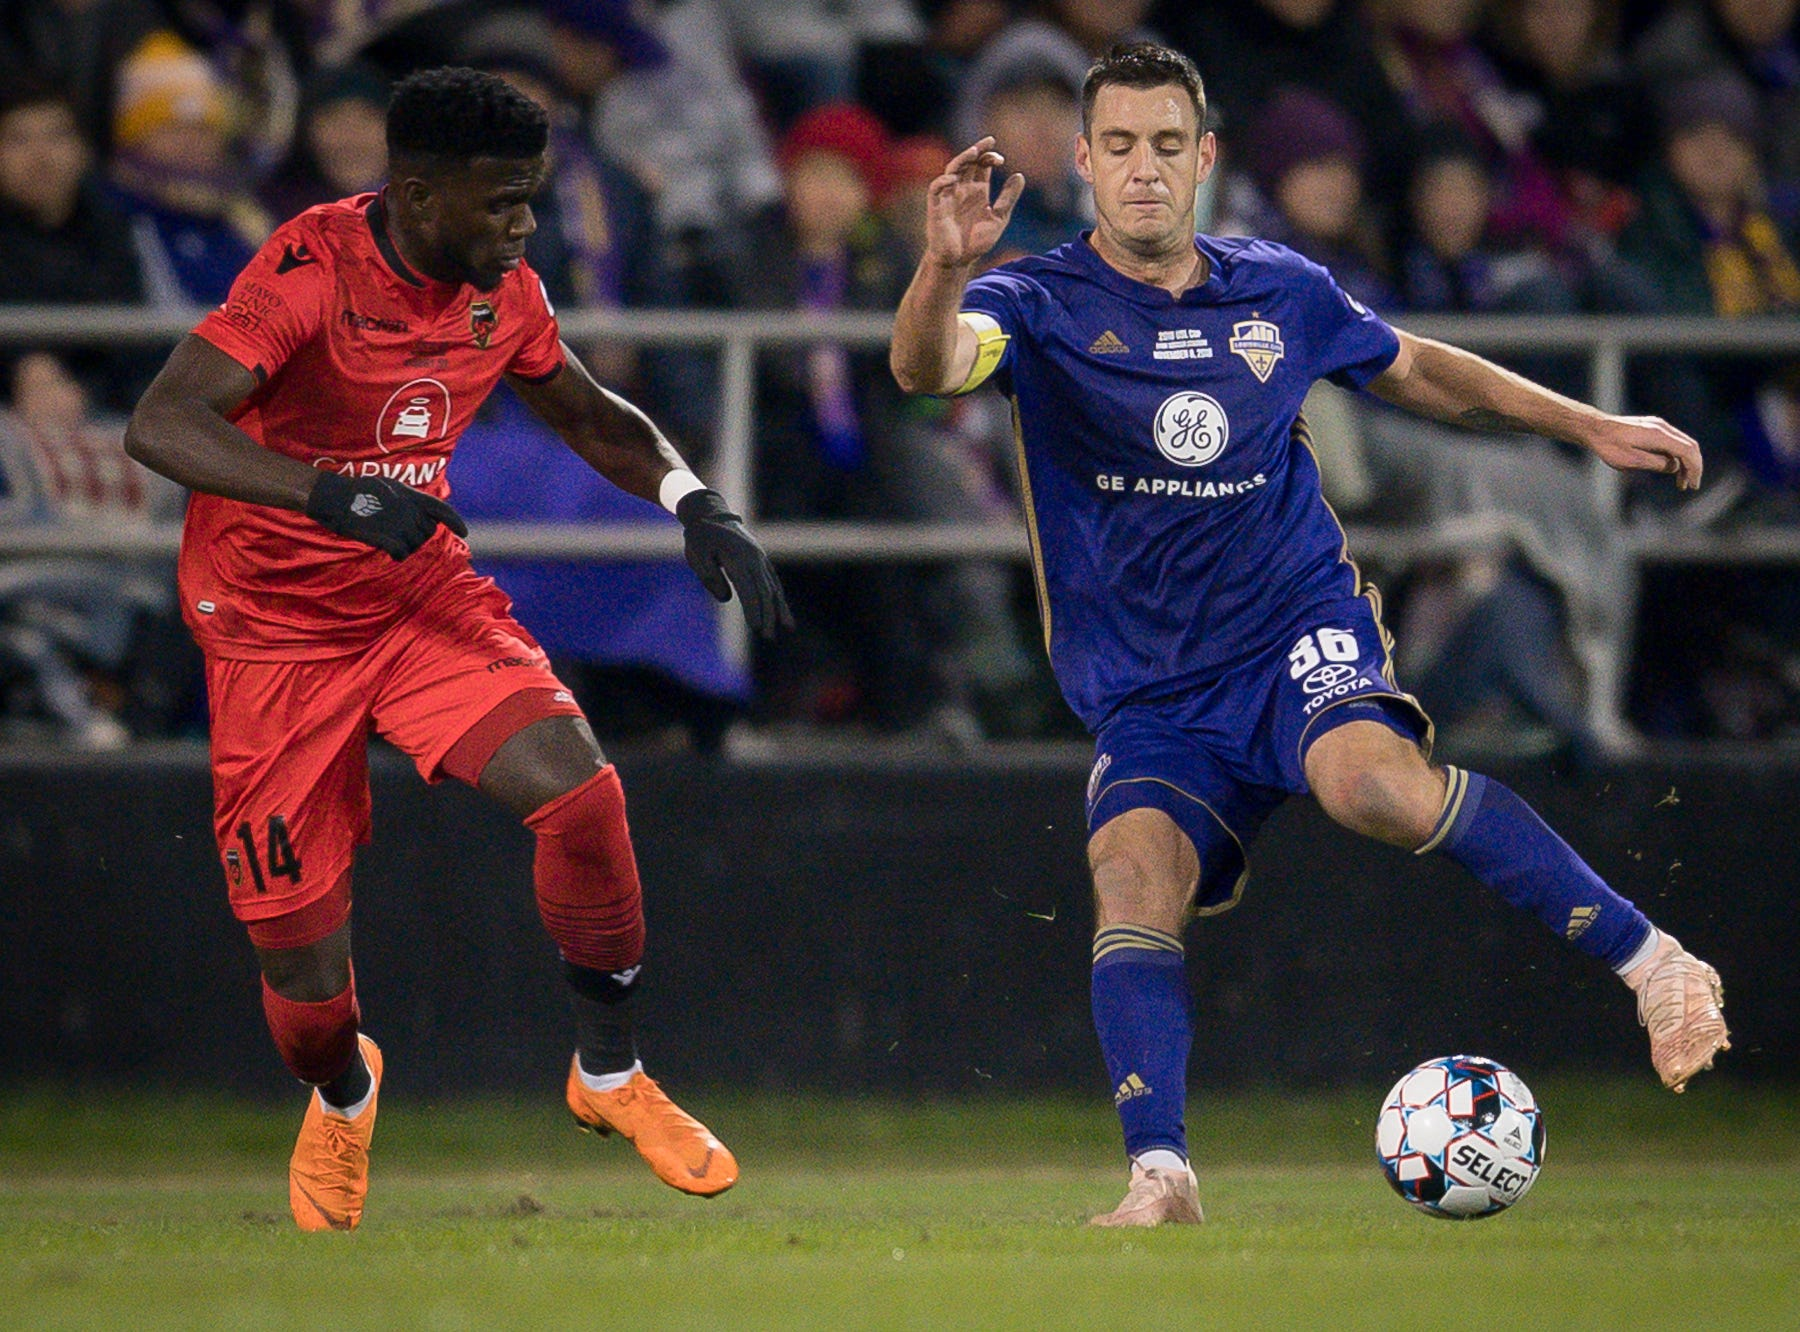 Louisville City FC midfielder Paolo DelPiccolo (36) plays against Phoenix Rising FC forward Jason Johnson (14) during the USL Cup final played at Lynn Stadium on the campus of the University of Louisville, Louisville, Ky., Thursday, Nov., 8, 2018.